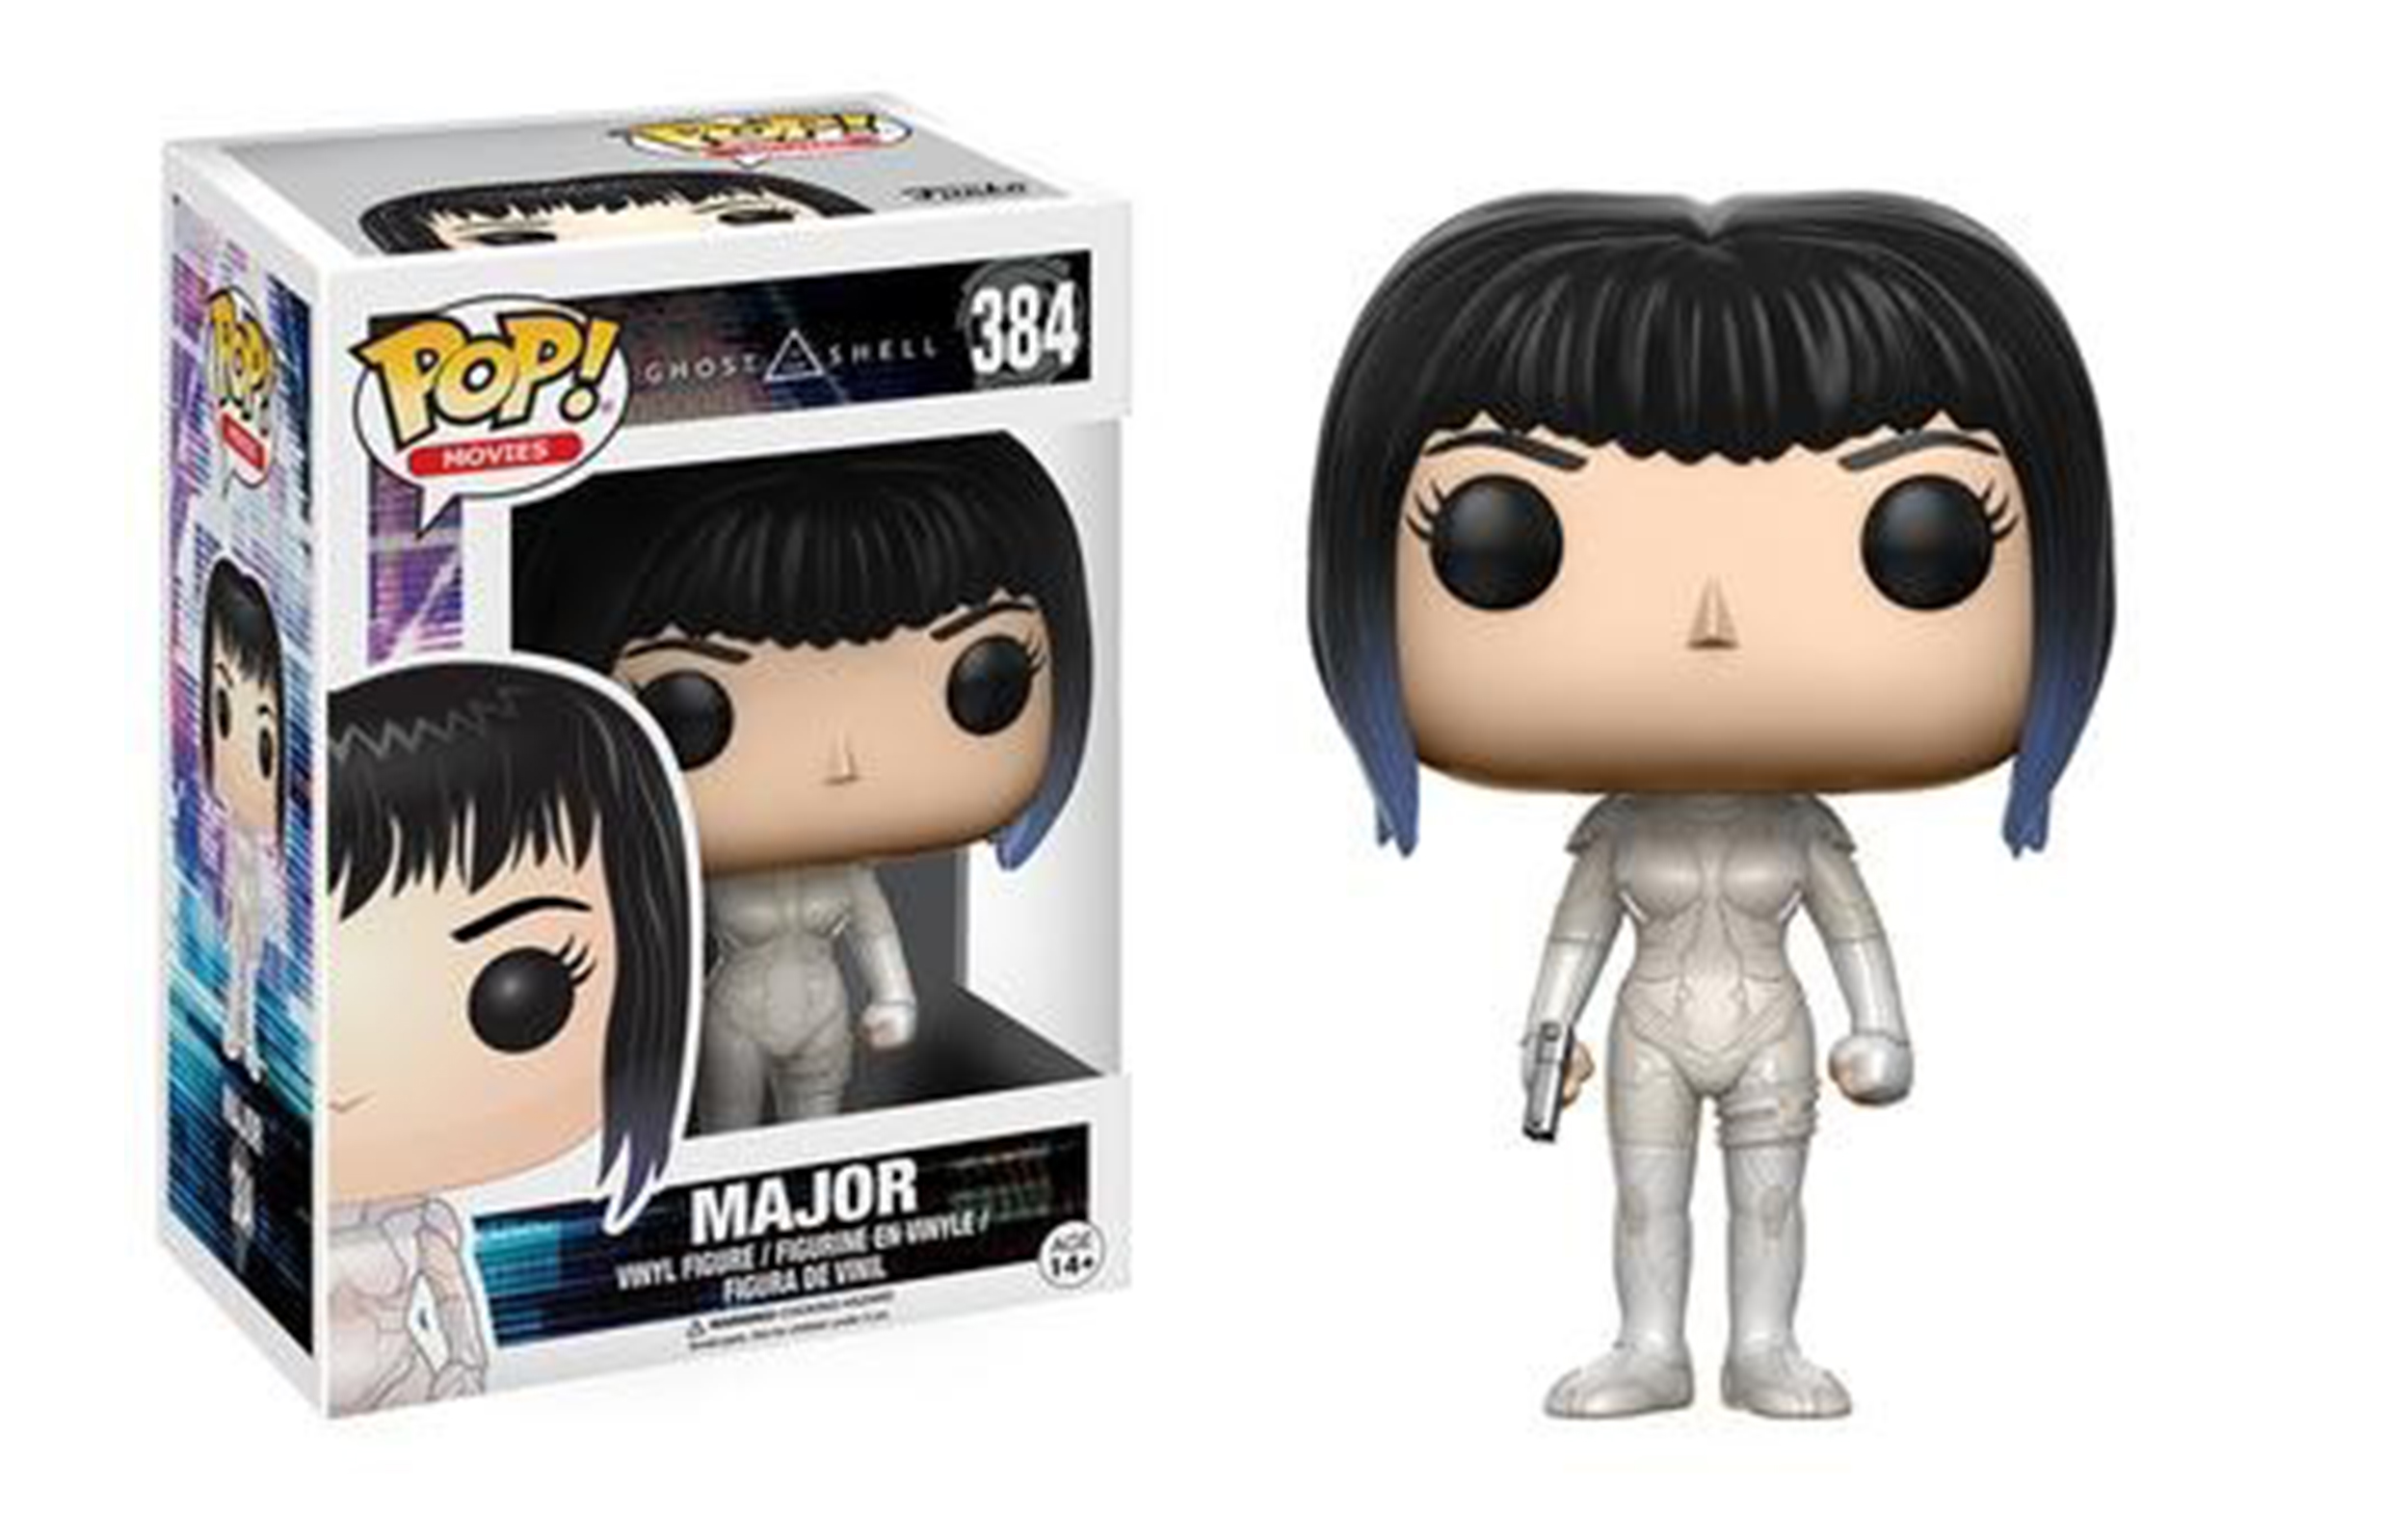 Ghost in the Shell Major 384 Funko POP Vinyl Figure